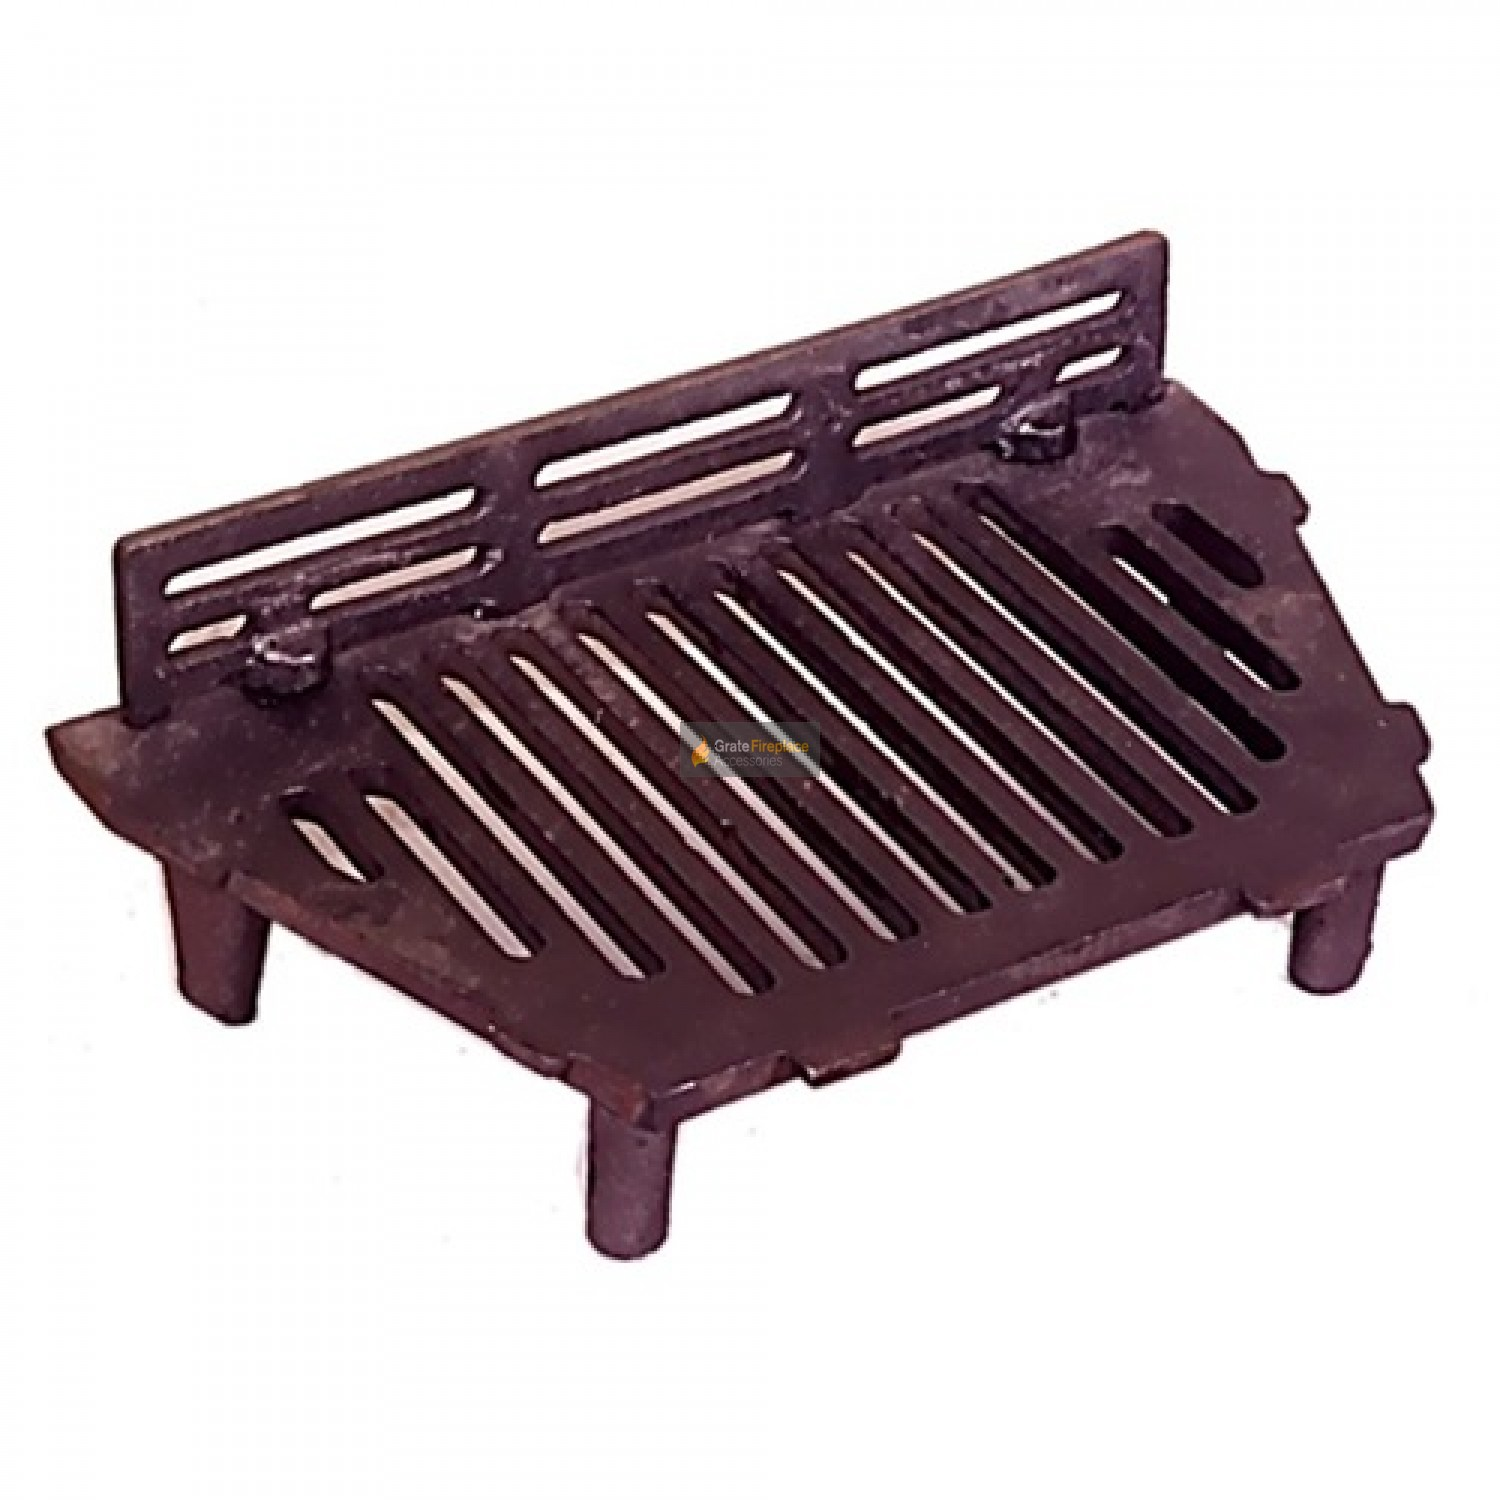 18 inch a l stool fire grate 4 legs including up stand cast iron rh gratefireplaceaccessories co uk  18 inch fire pit grate